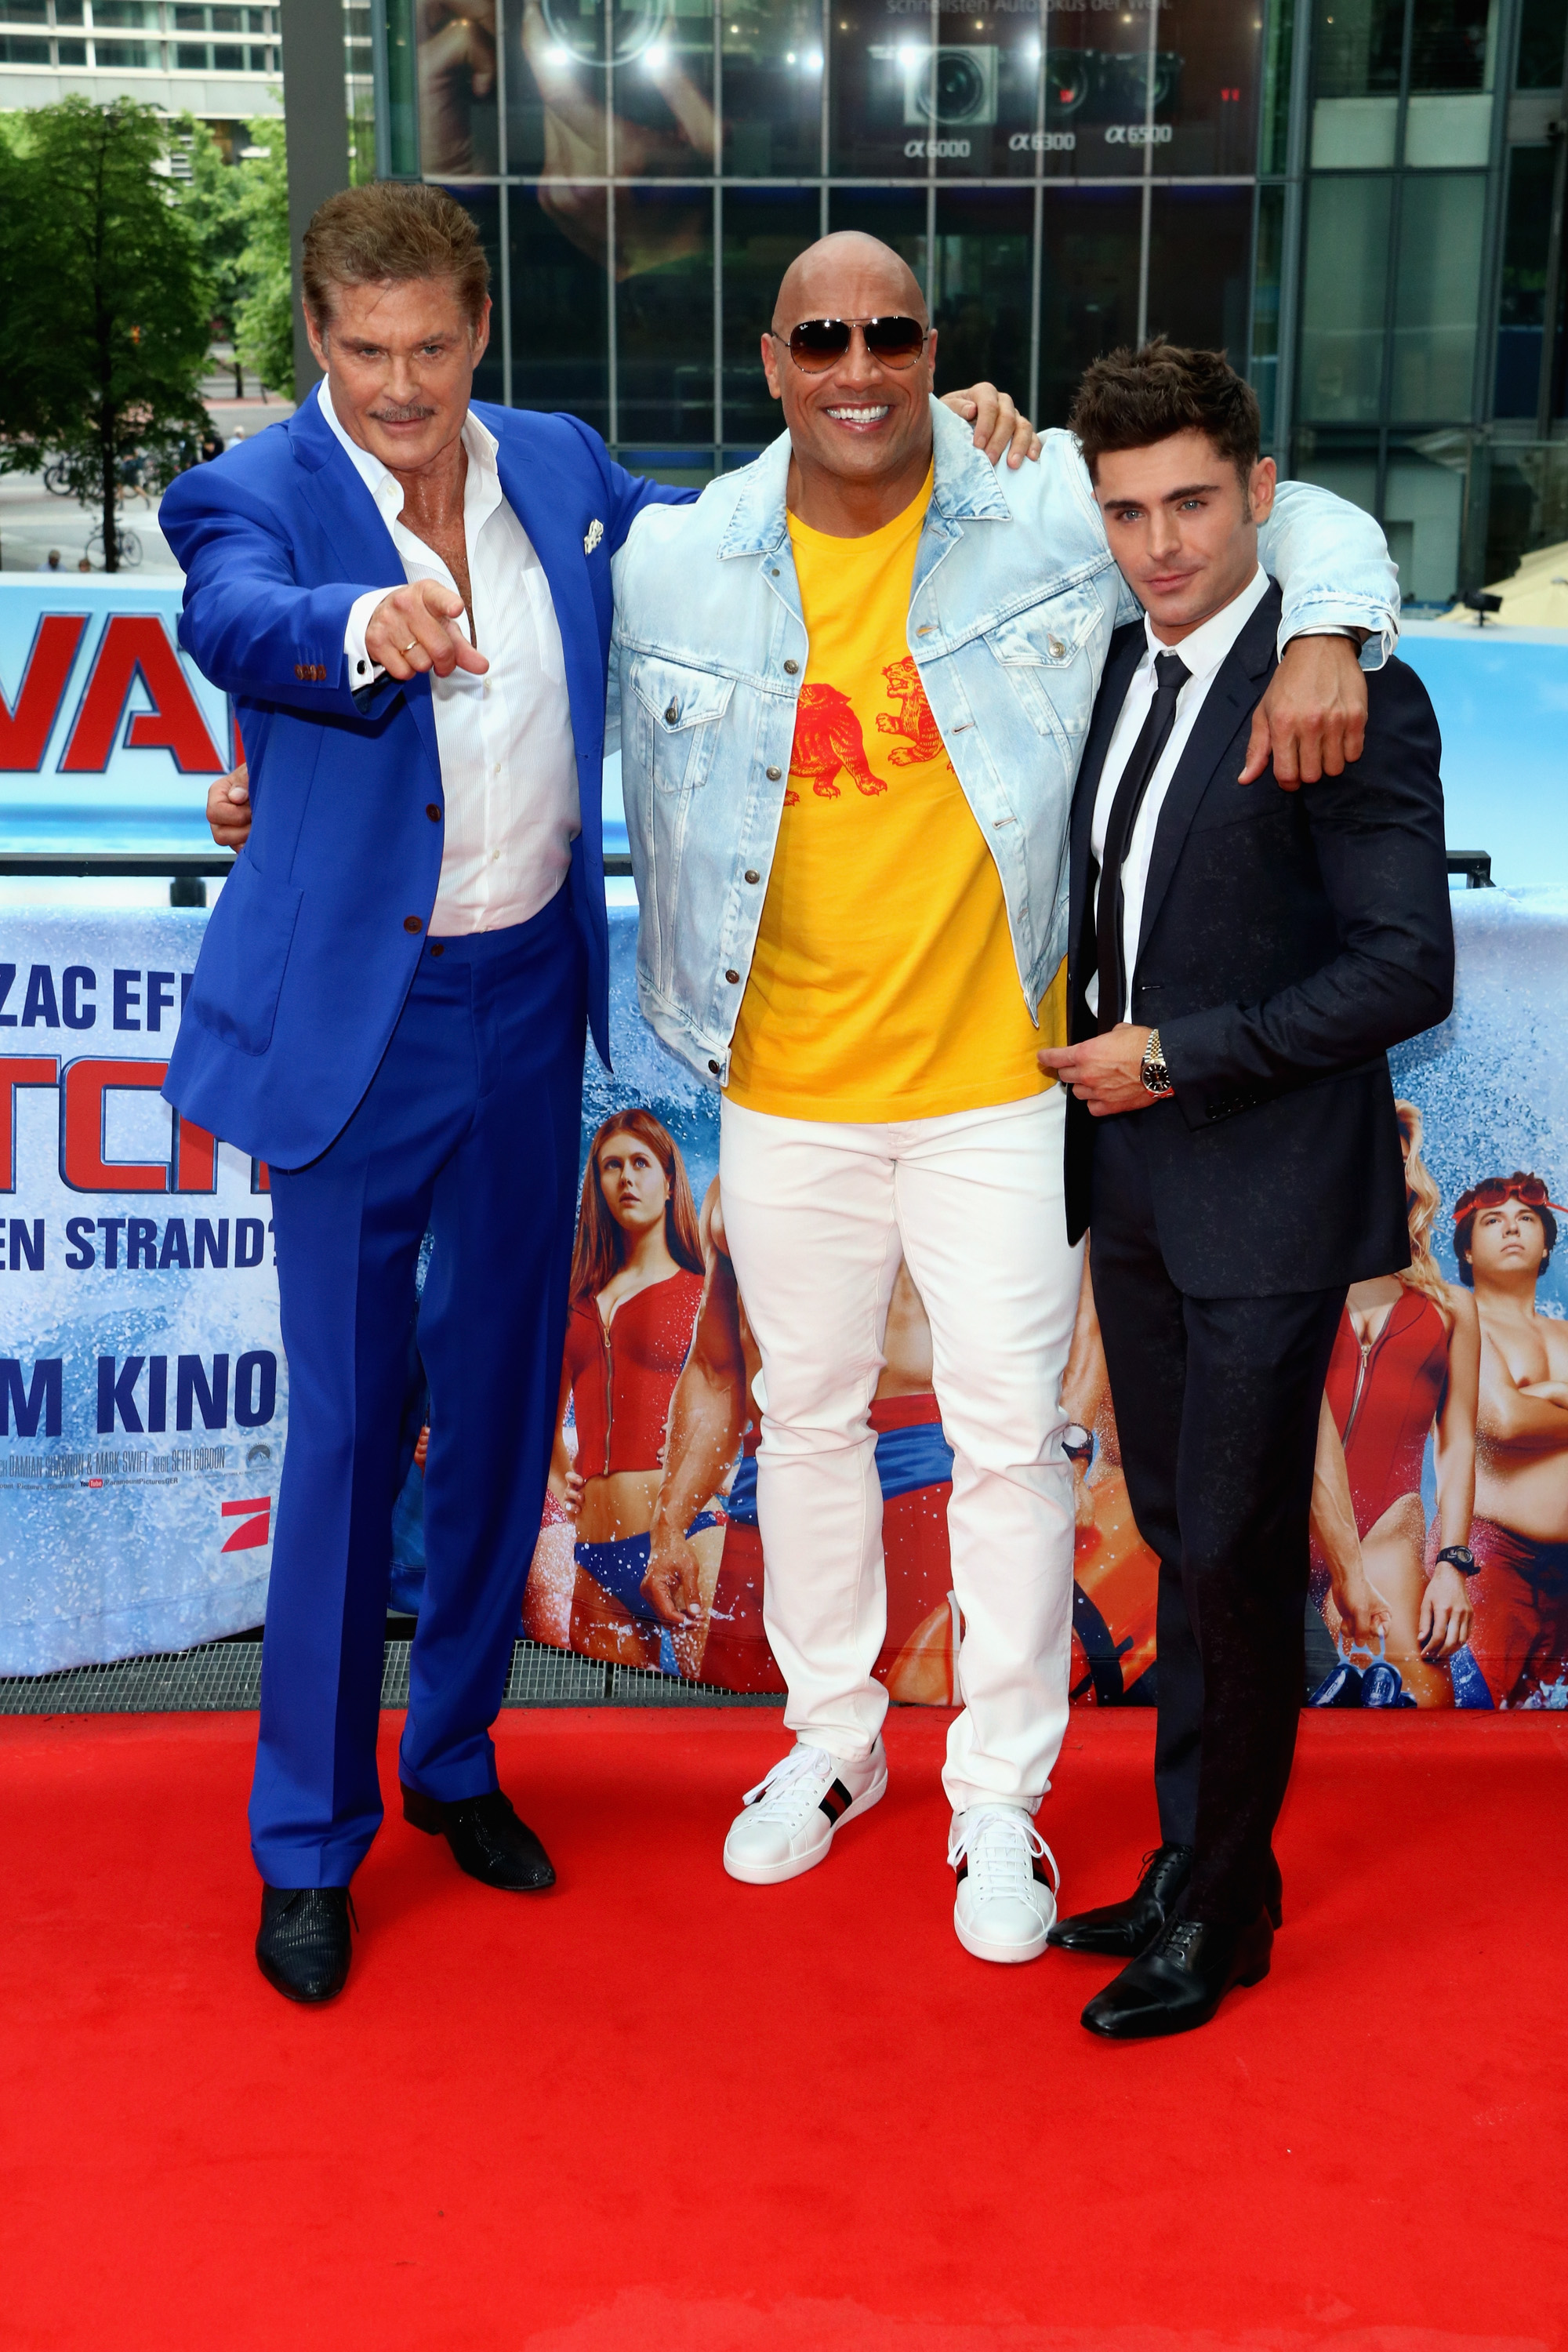 Zac Efrons Height See How He Compares To His Famous Friends